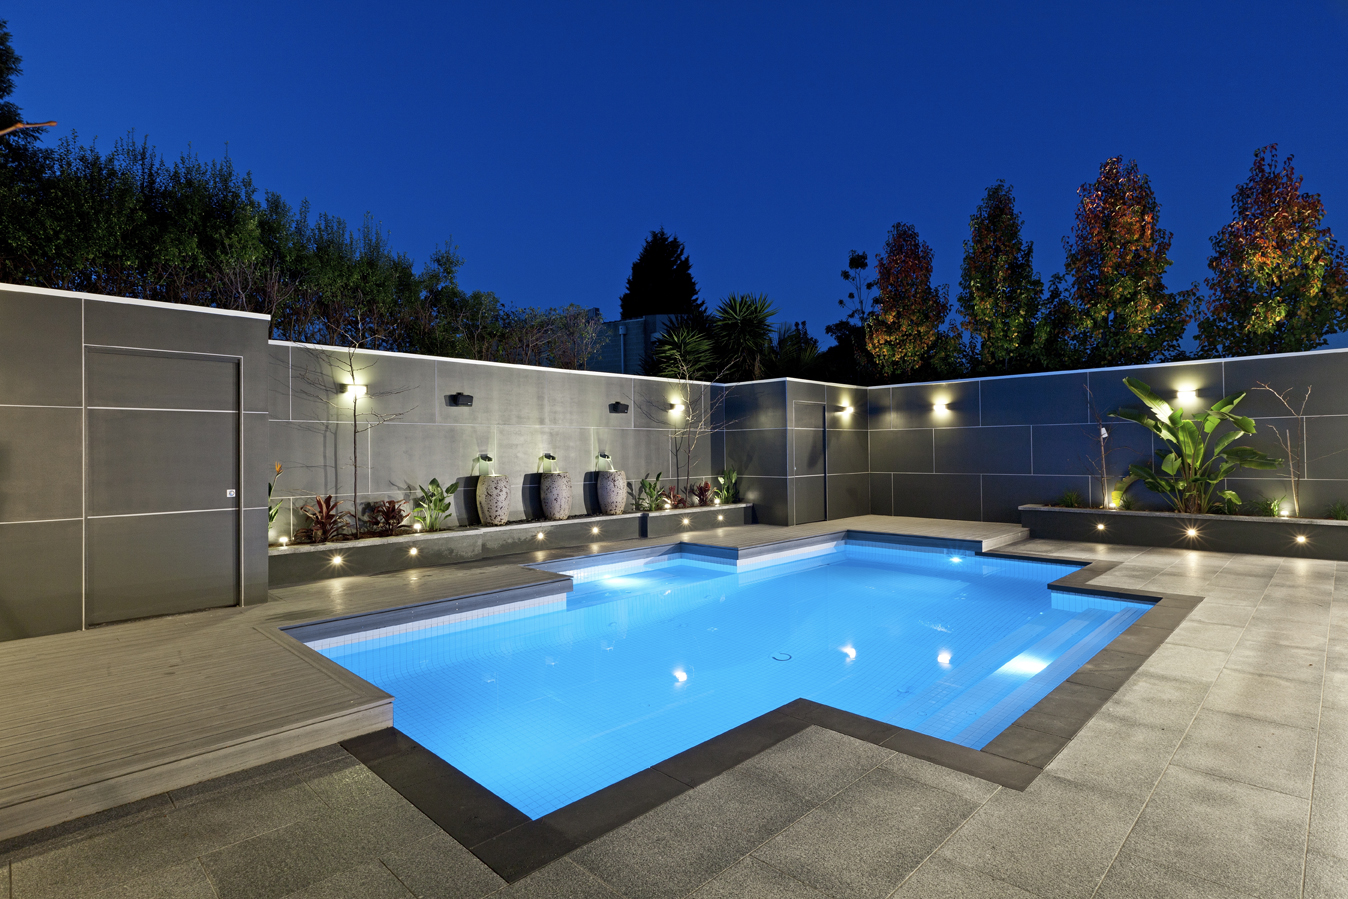 Backyard landscaping ideas swimming pool design for Best pool design 2015